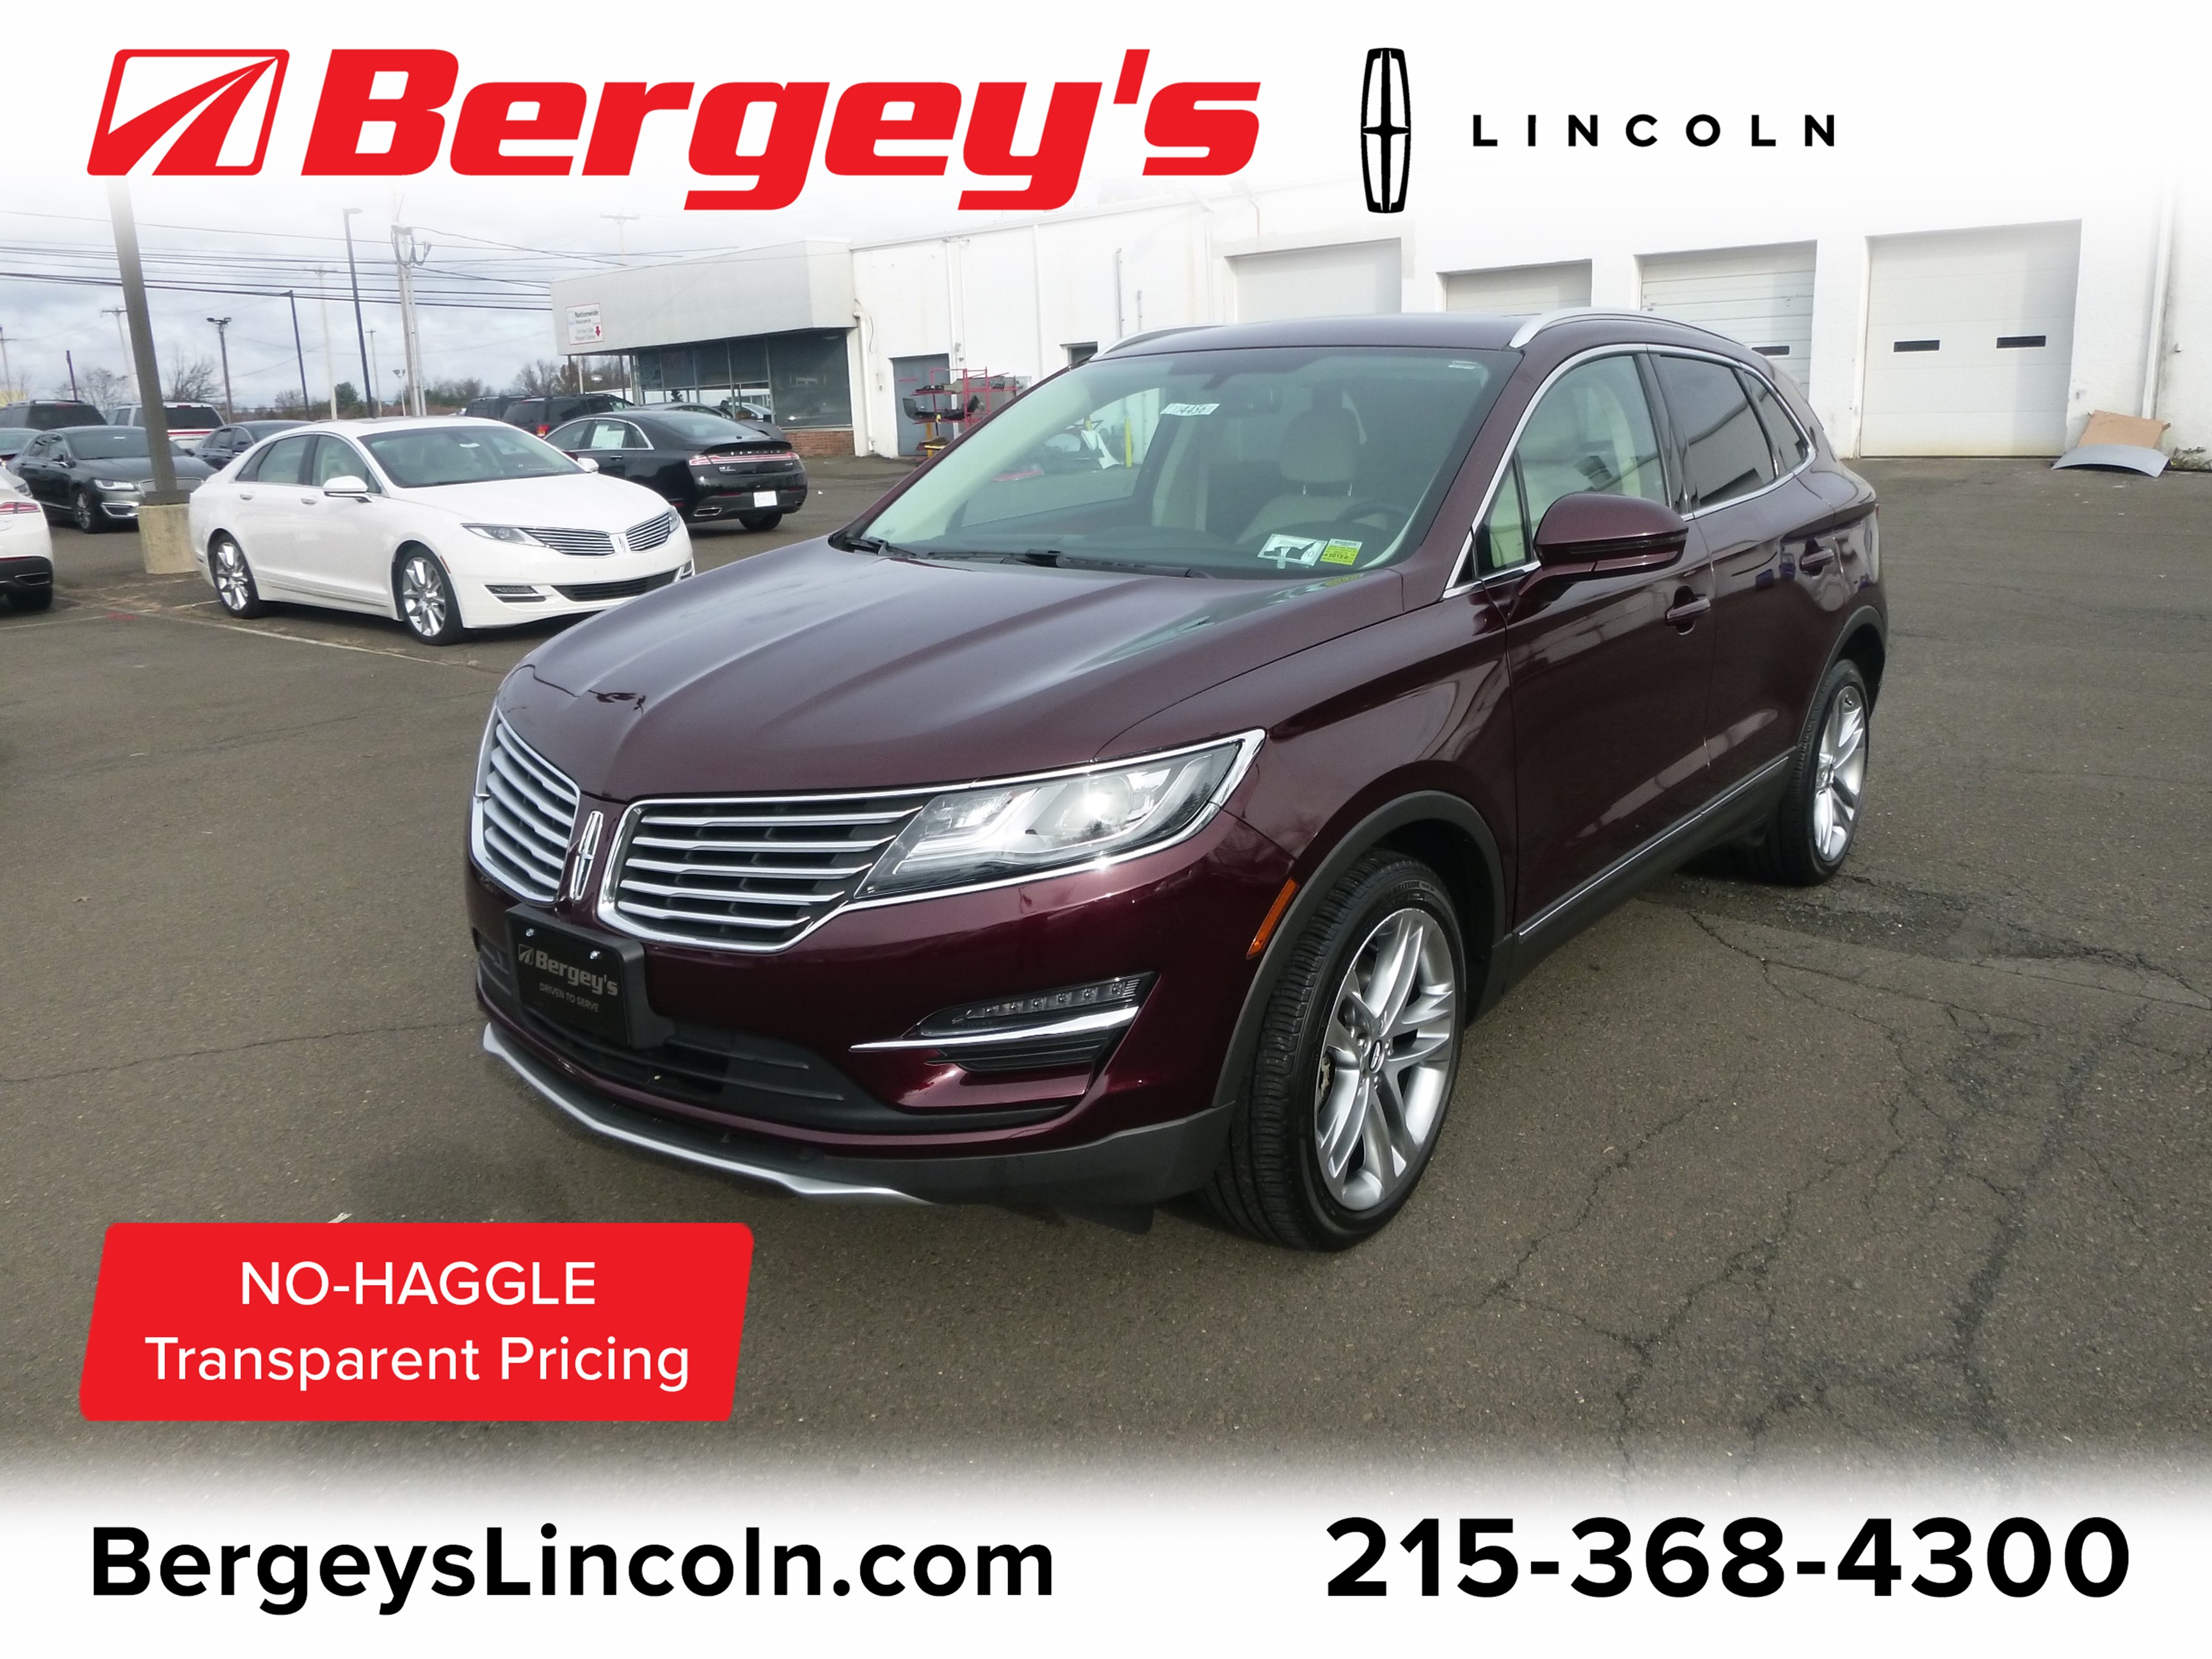 2016 Lincoln MKC 2.0L AWD Reserve w/ Panoramic Roof & Nav SUV